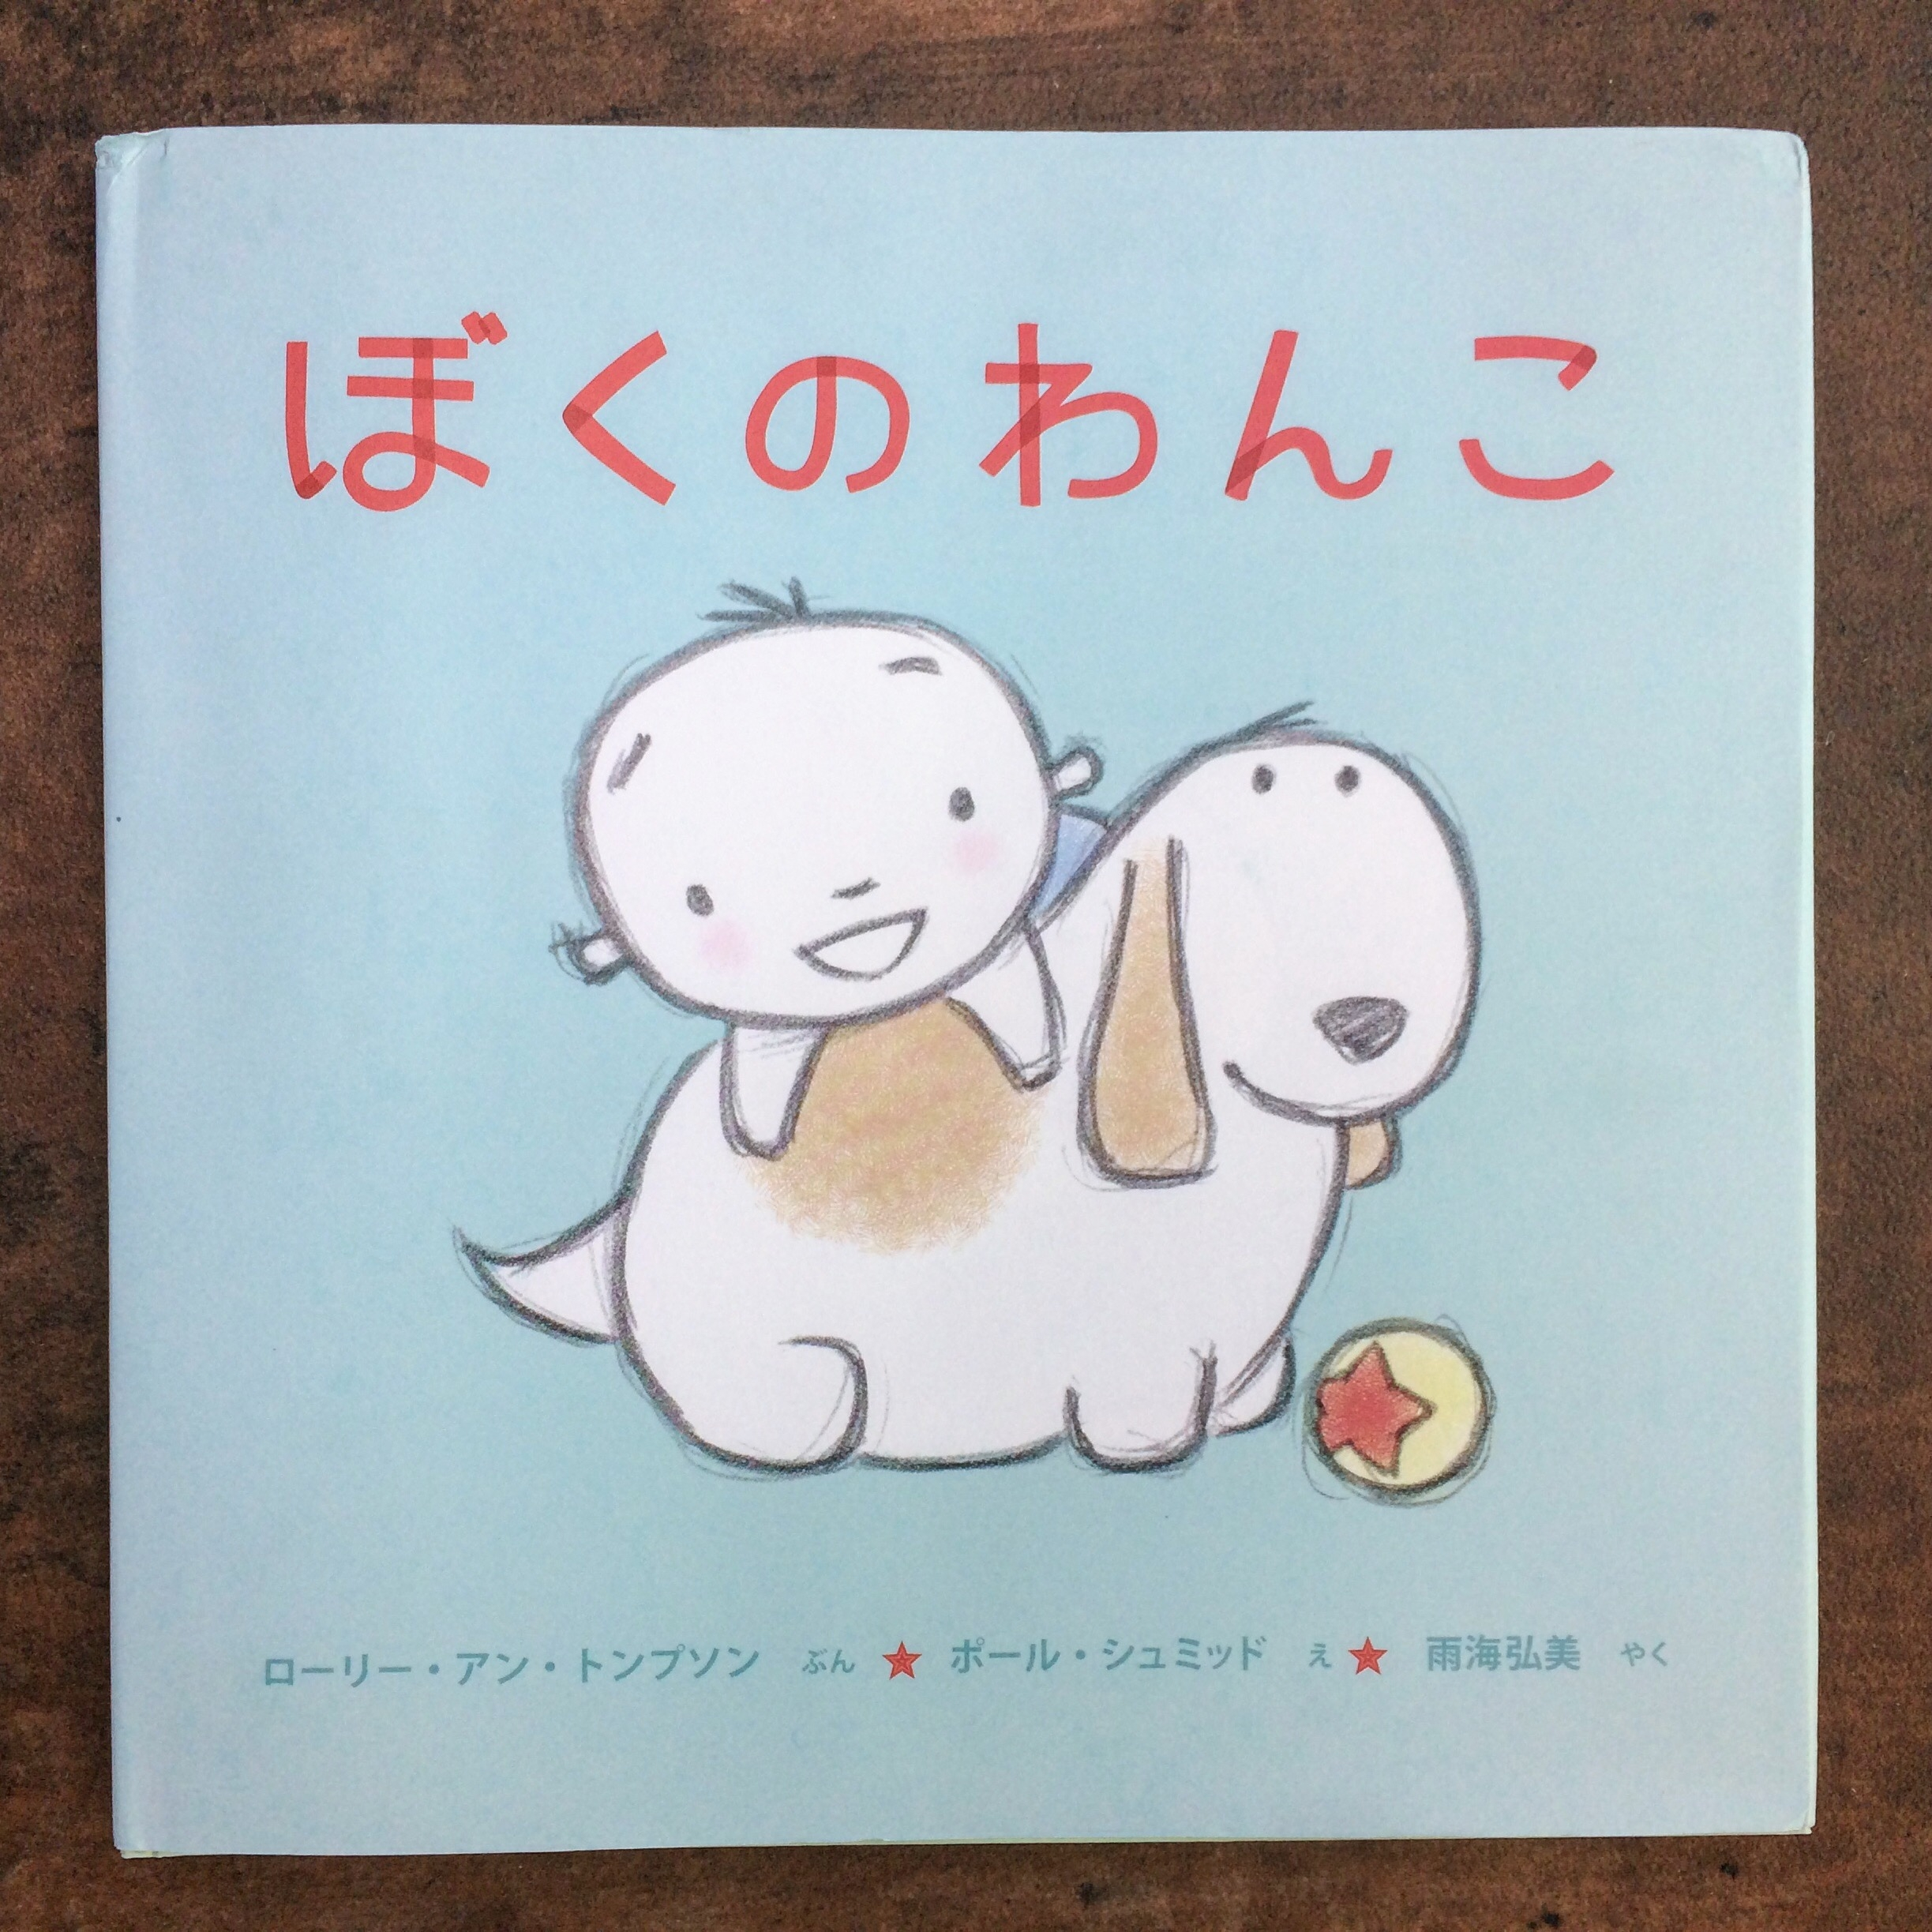 My Dog Is the Best cover in Japanese